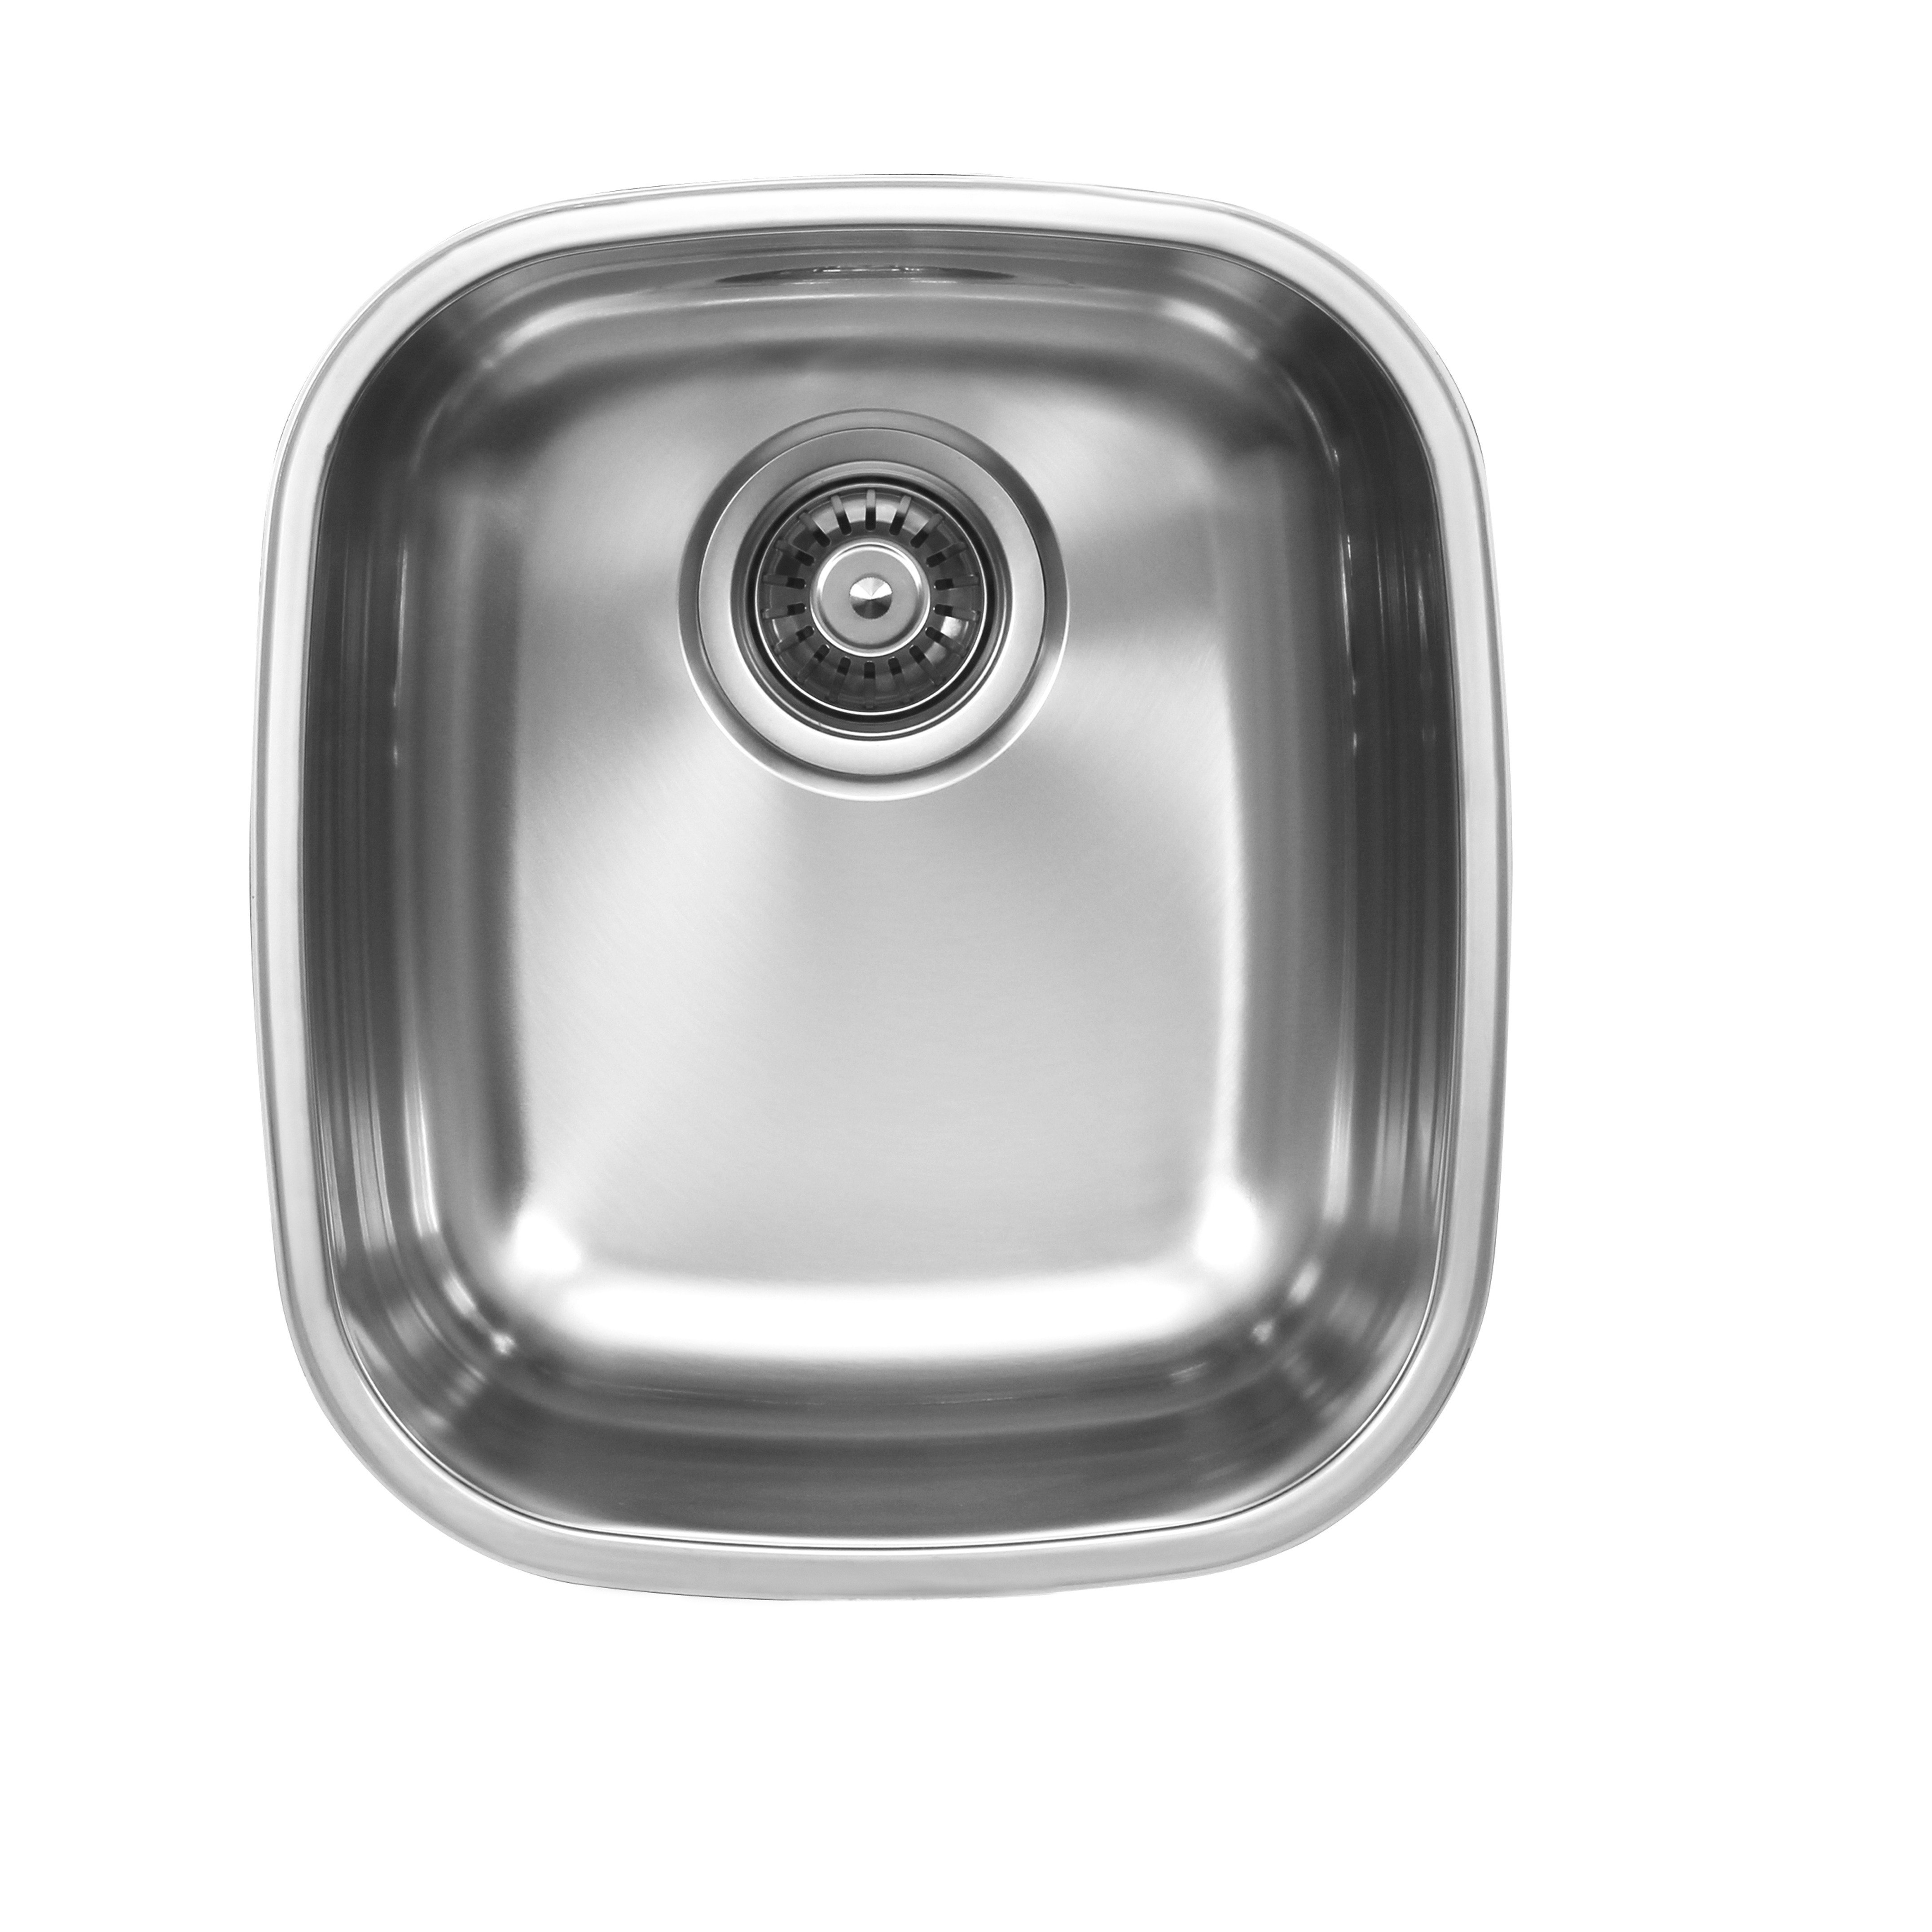 Ukinox D345.10C Undermount Single Bowl Stainless Steel Kitchen Sink With Cutting Board